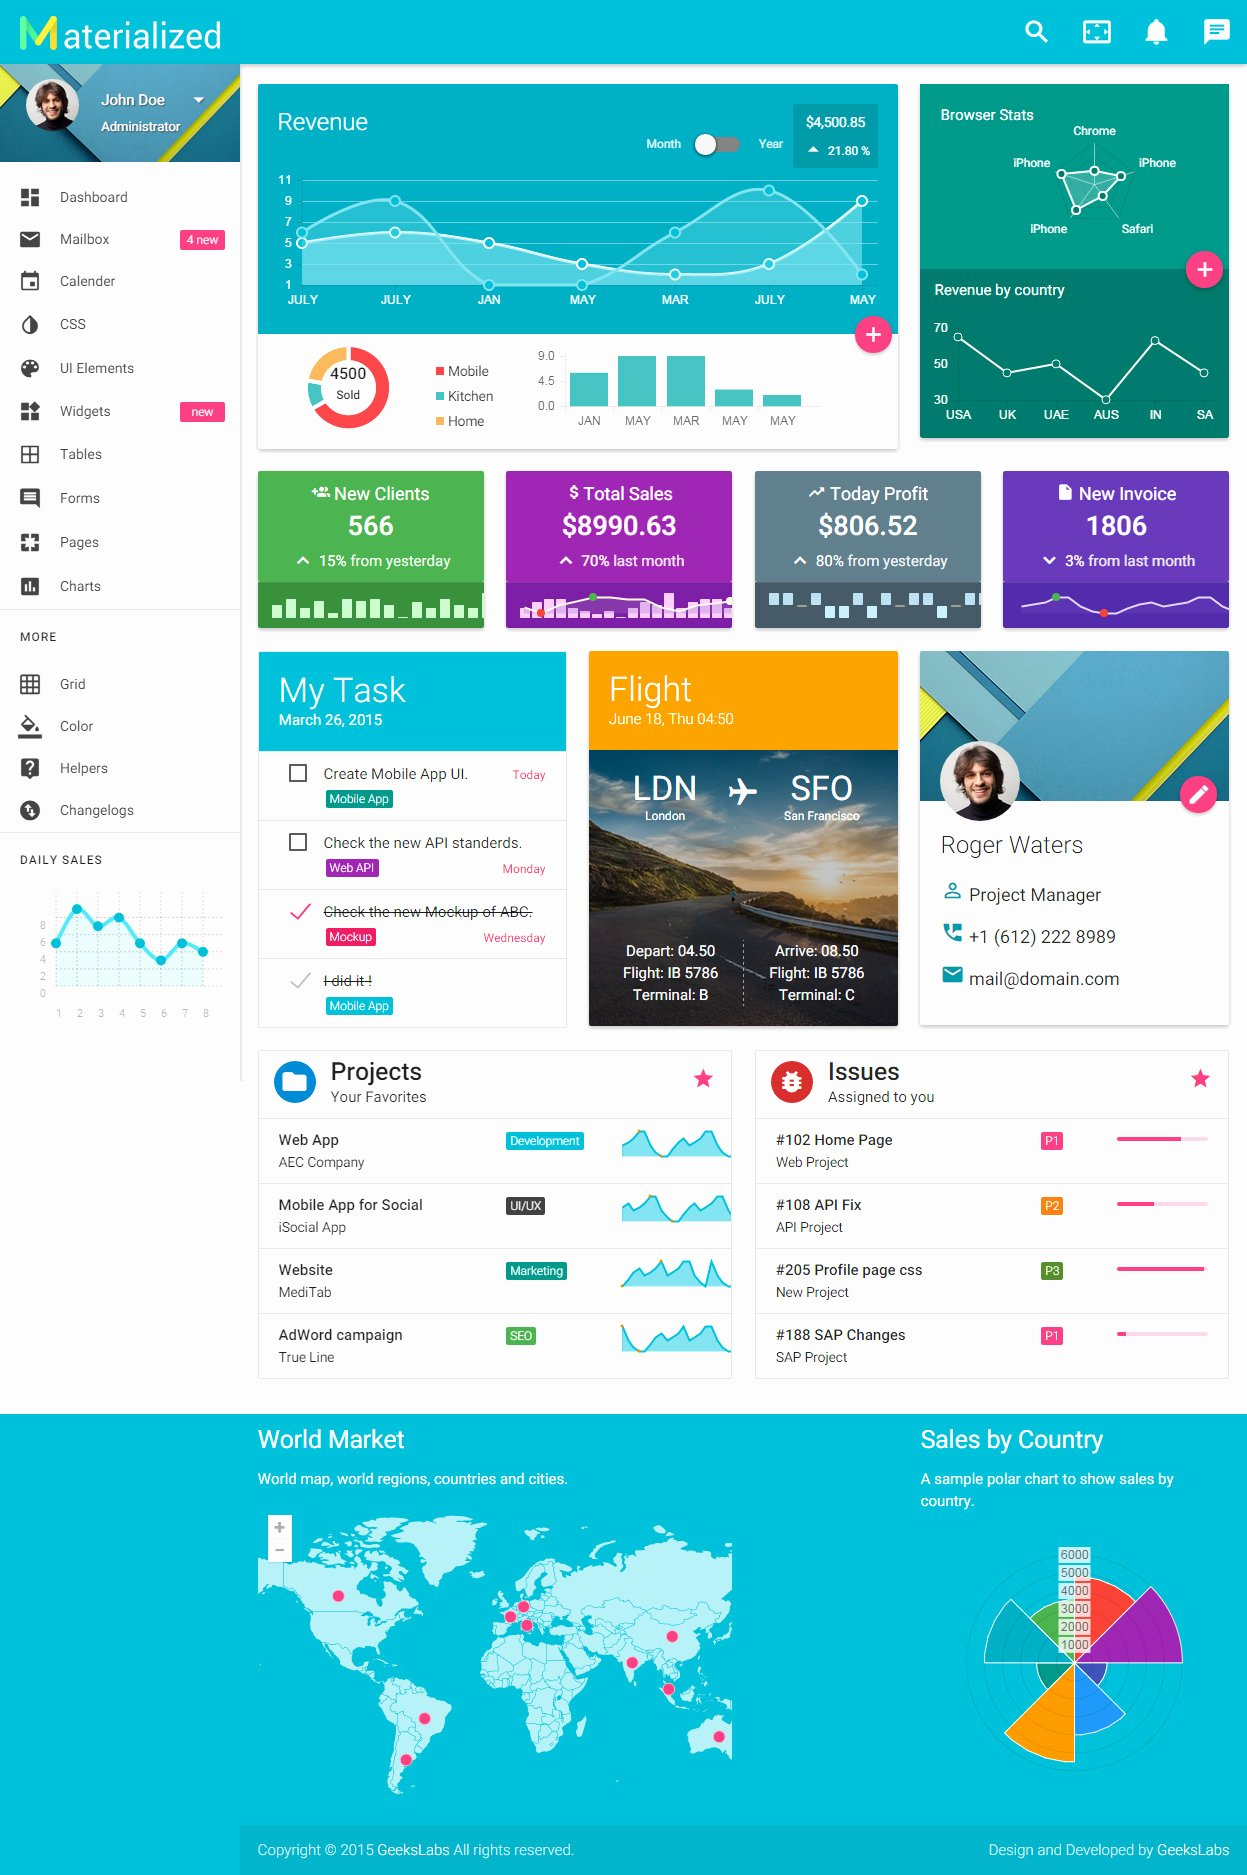 15 Best Material Design Dashboard Templates 2018